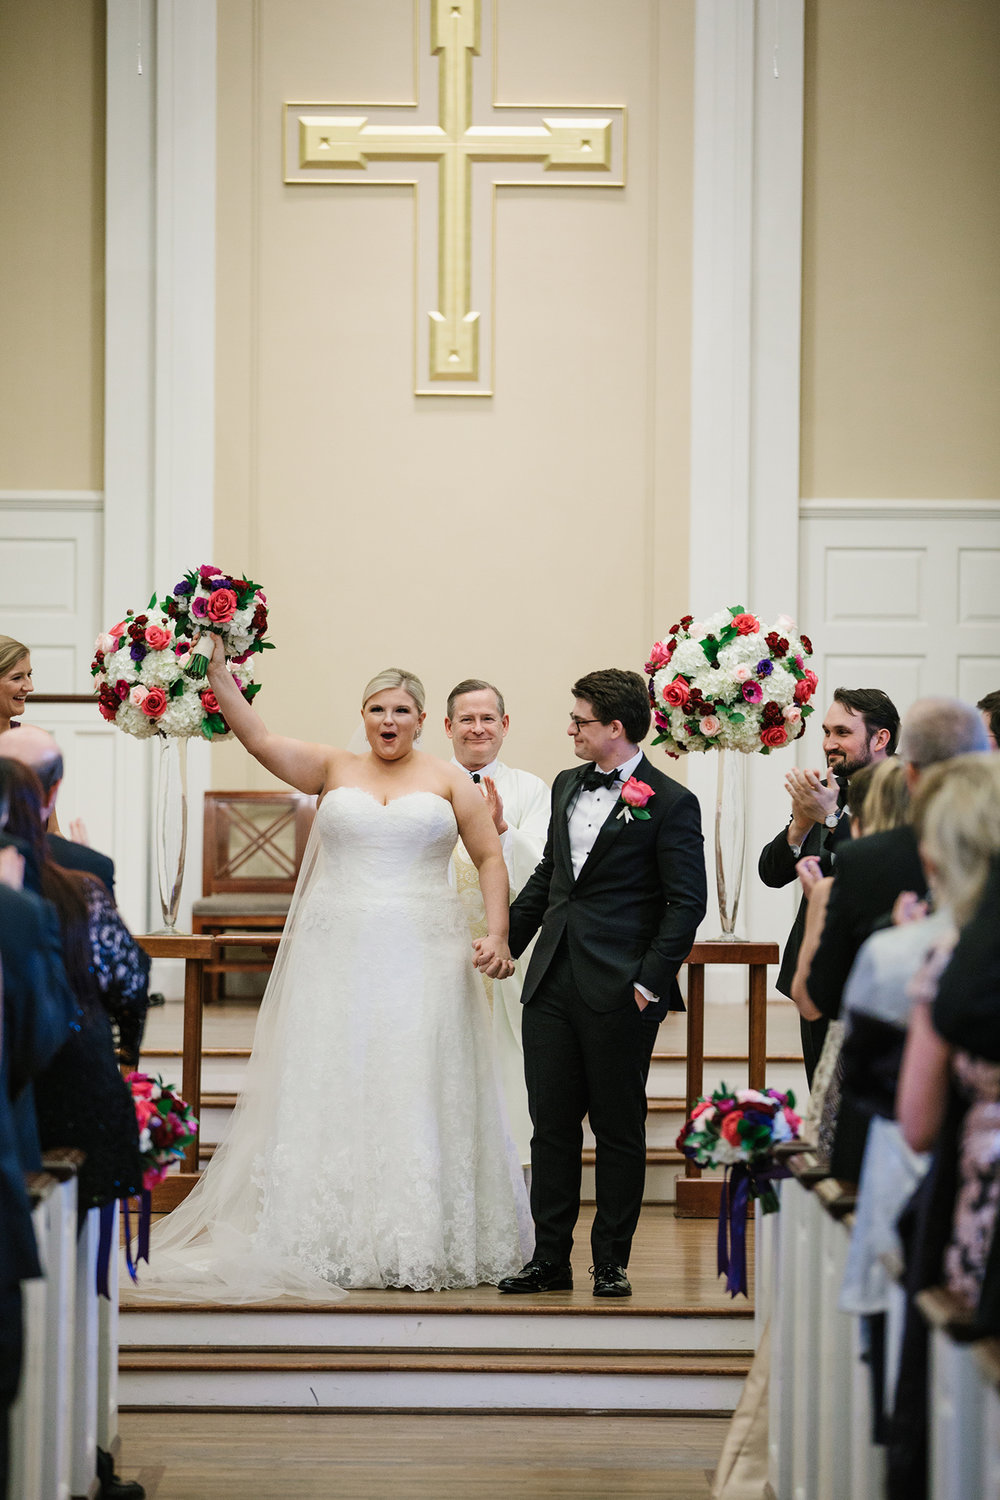 Dallas Weddings Planner - Allday Events - Katie + Matthew at The Adolphus Hotel - 402.jpg